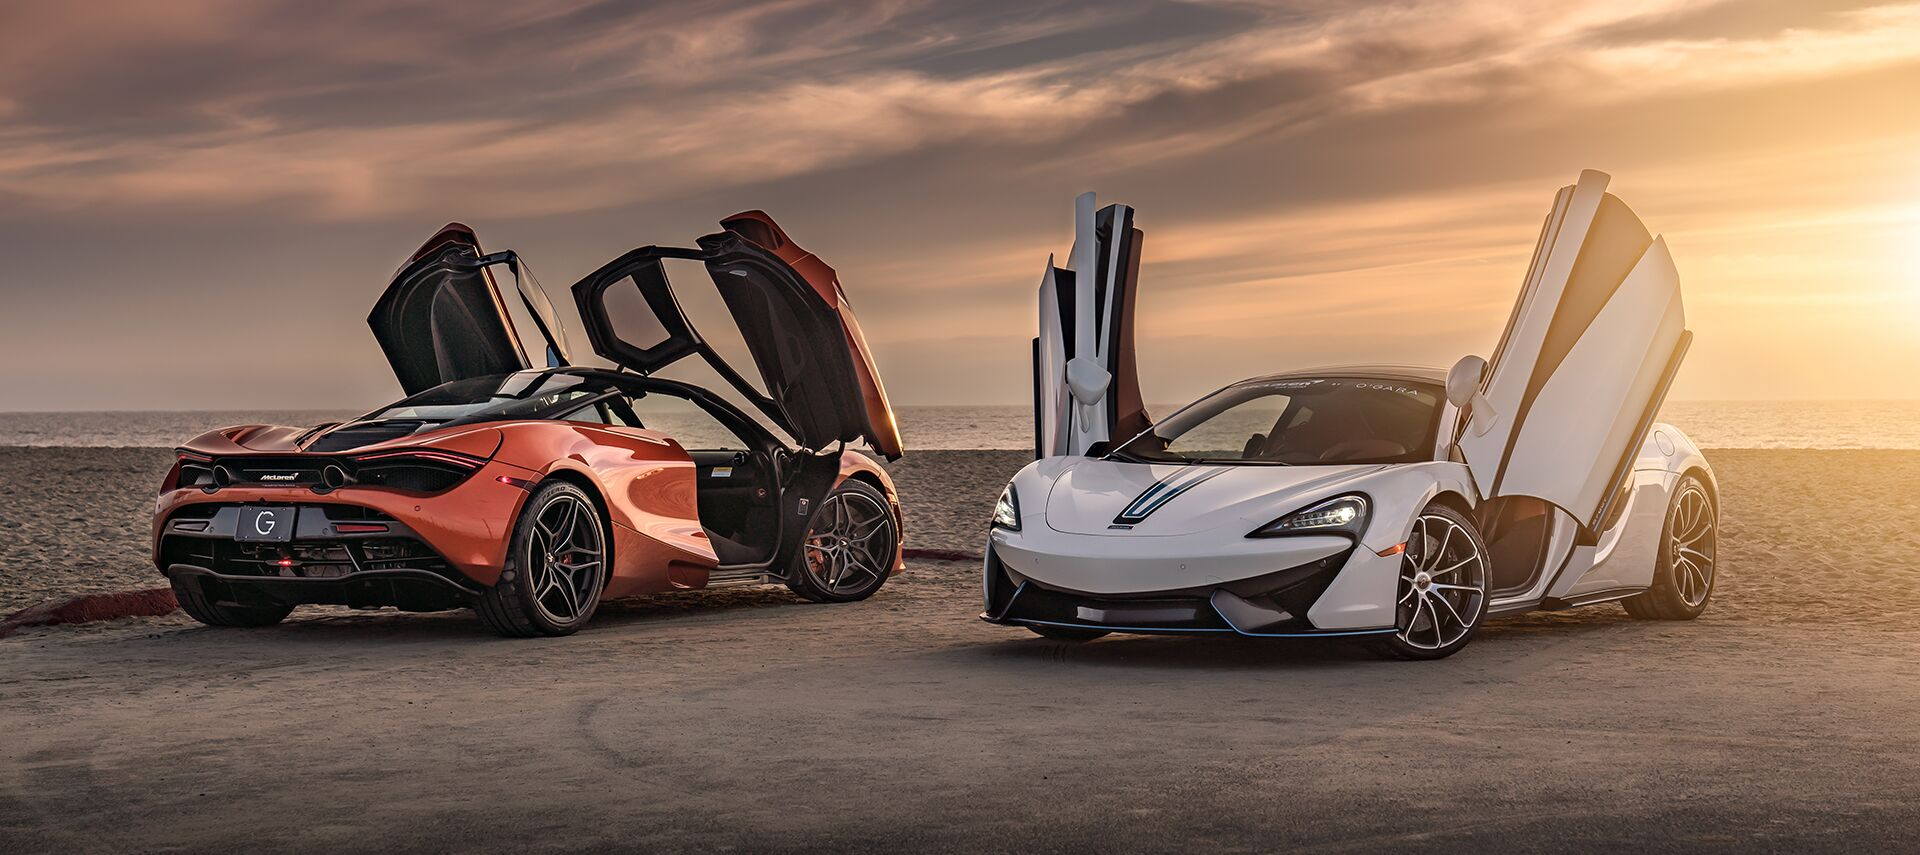 WELCOME TO MCLAREN SAN DIEGO